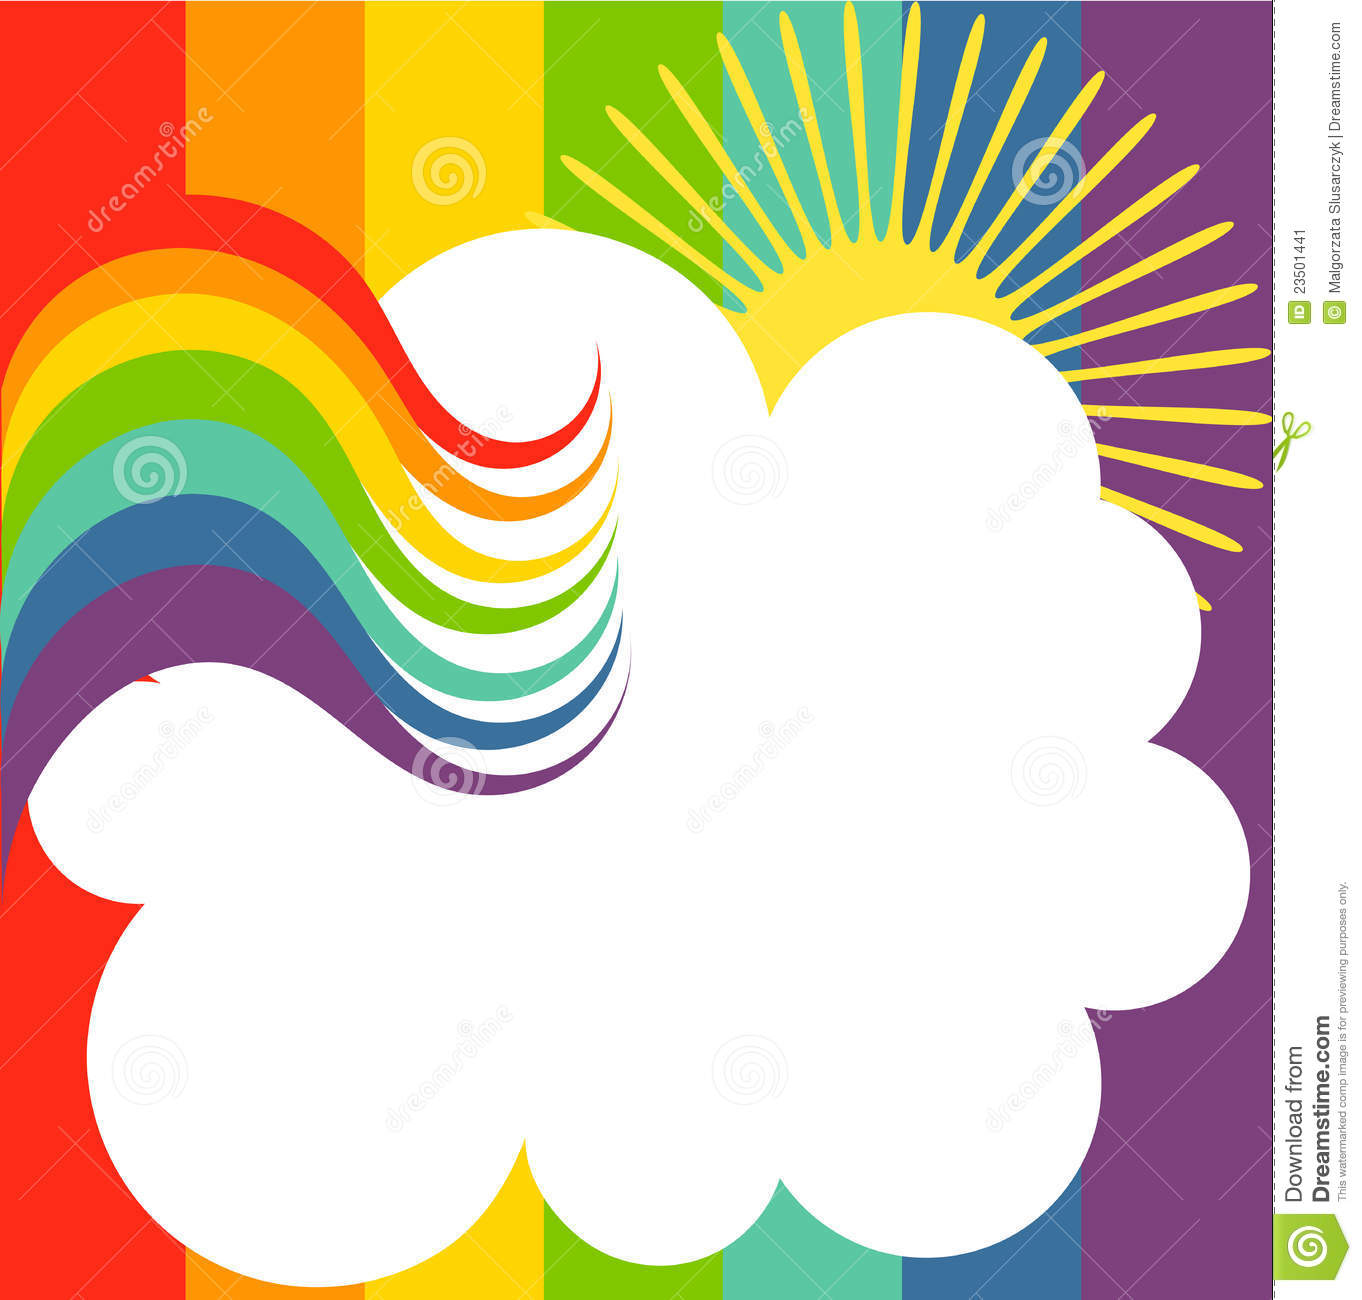 Rainbow background with cloud. vector illustration.